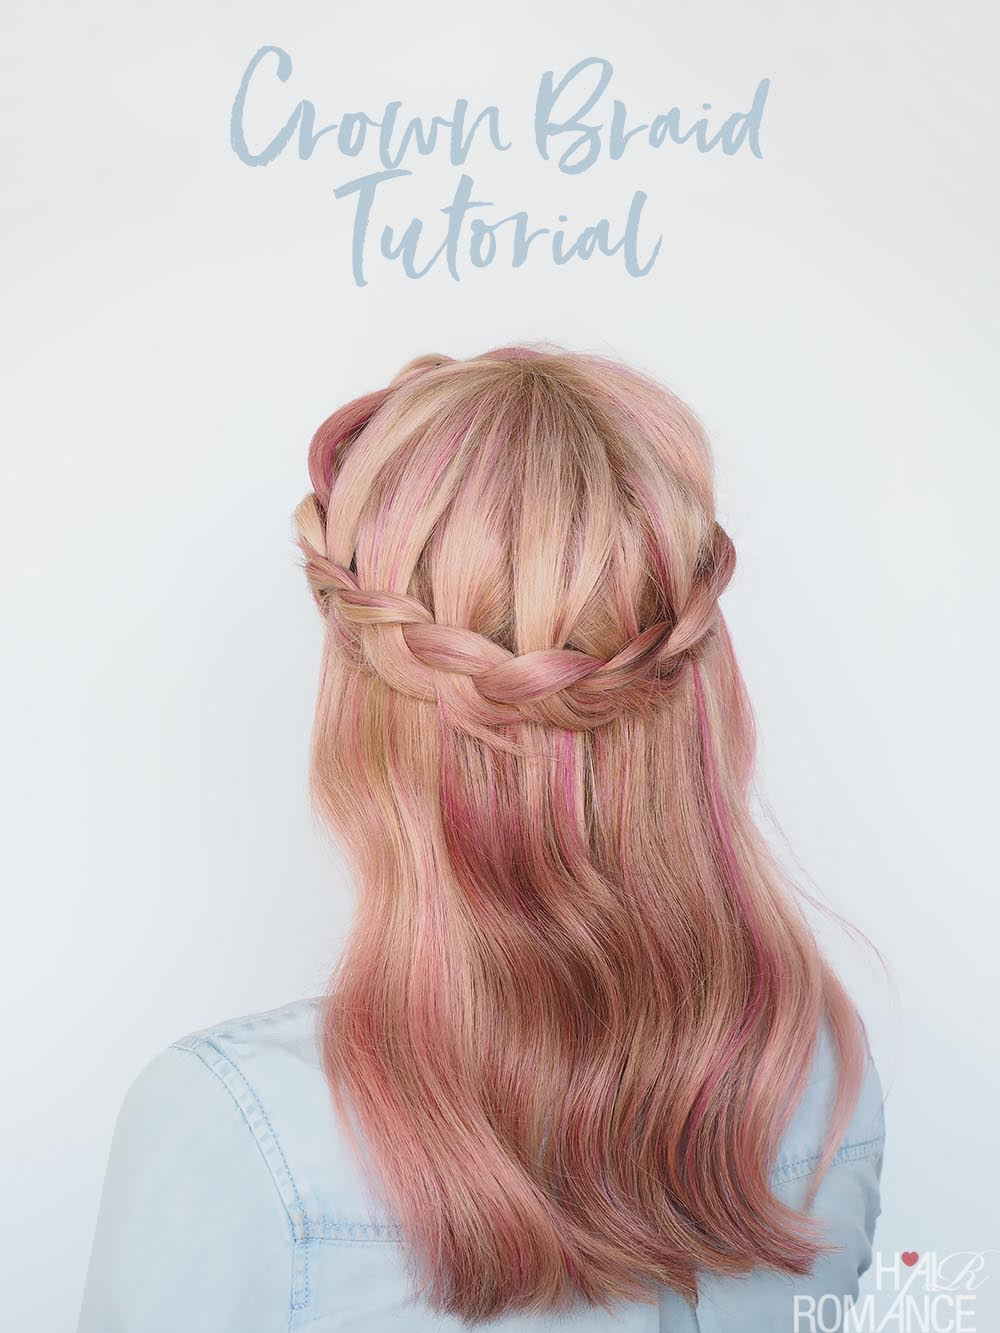 A New Way To Wear A Crown Braid 2 Hairstyle Tutorials In 1